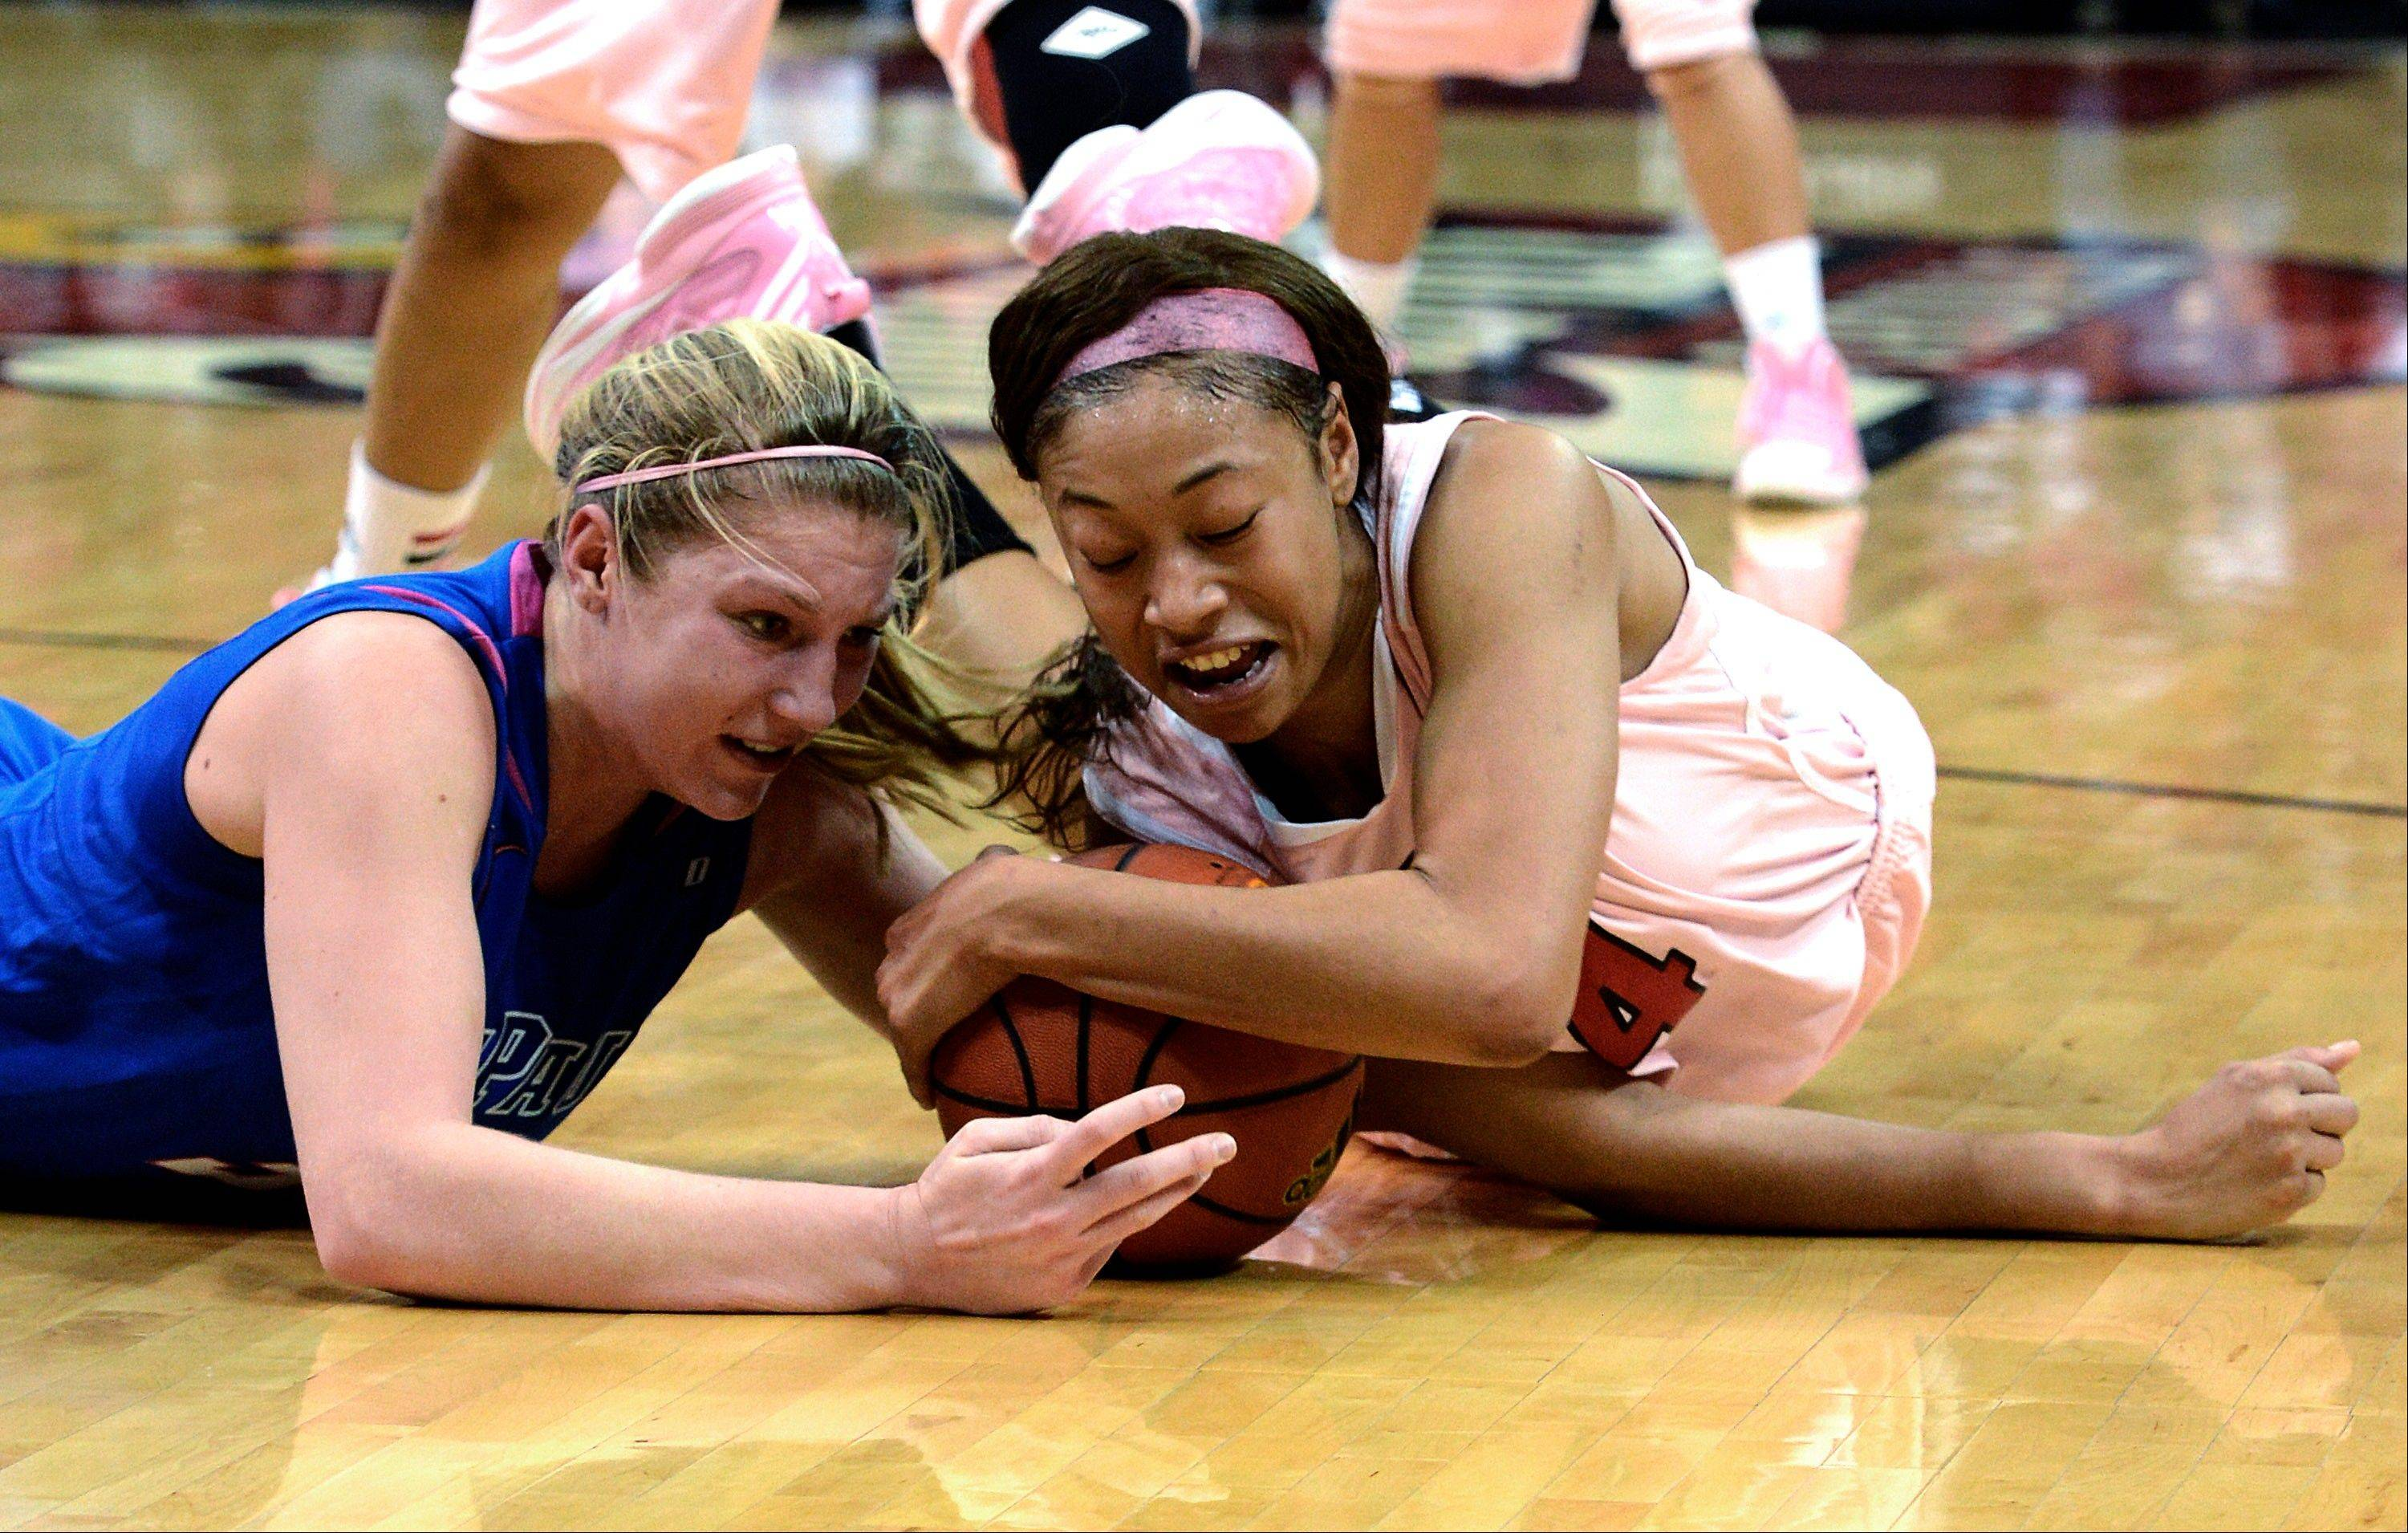 Louisville's Antonia Slaughter, right, battles DePaul's Megan Podkowa for a loose ball during the second half Sunday in Louisville, Ky. Louisville won 81-55.